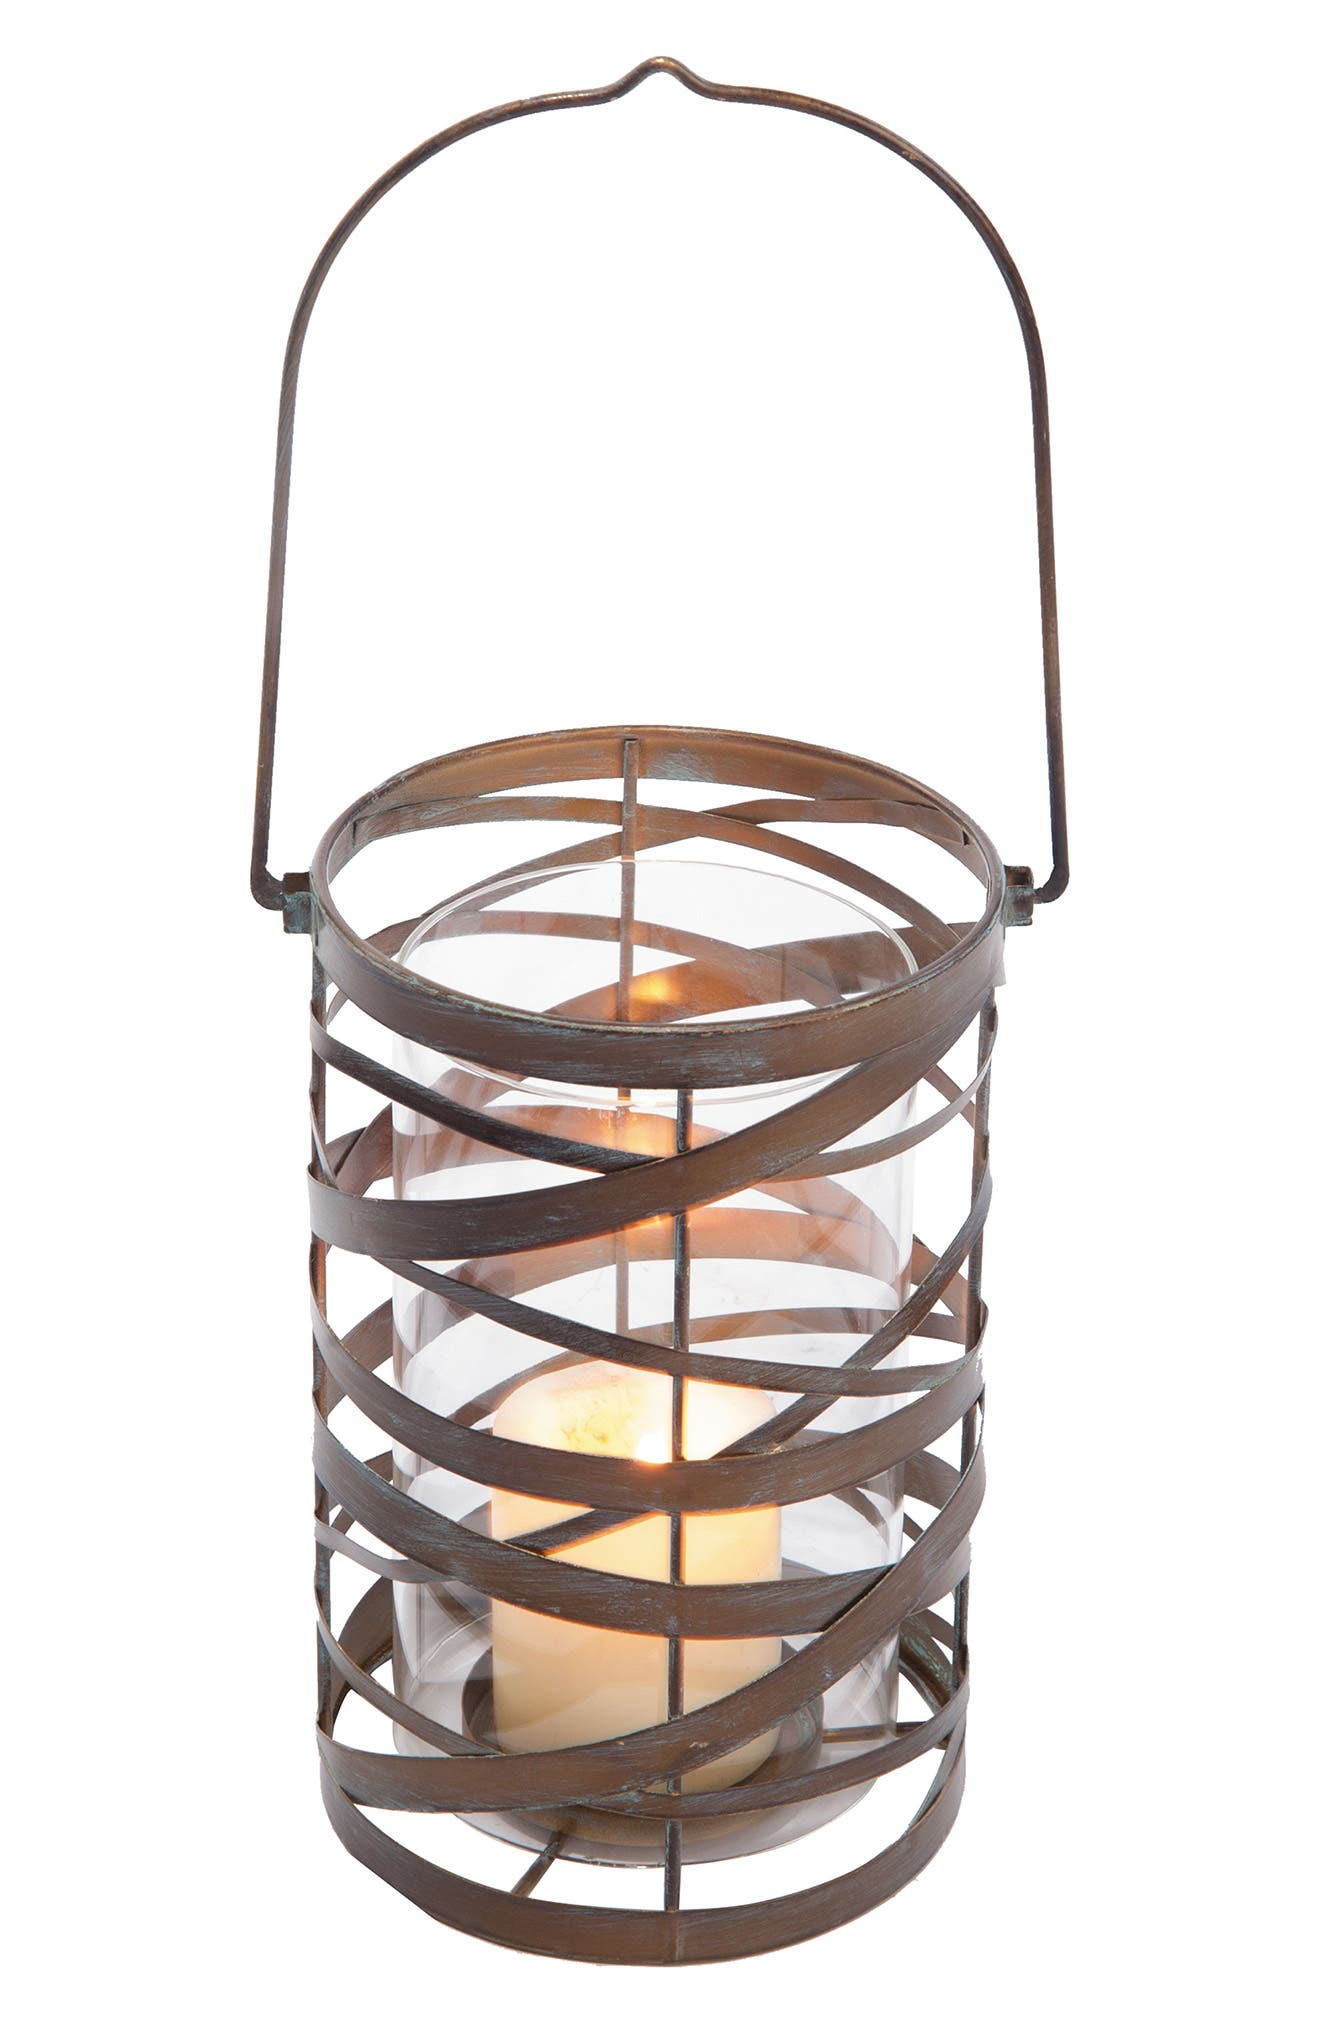 Foreside Coil Lantern Candle Holder